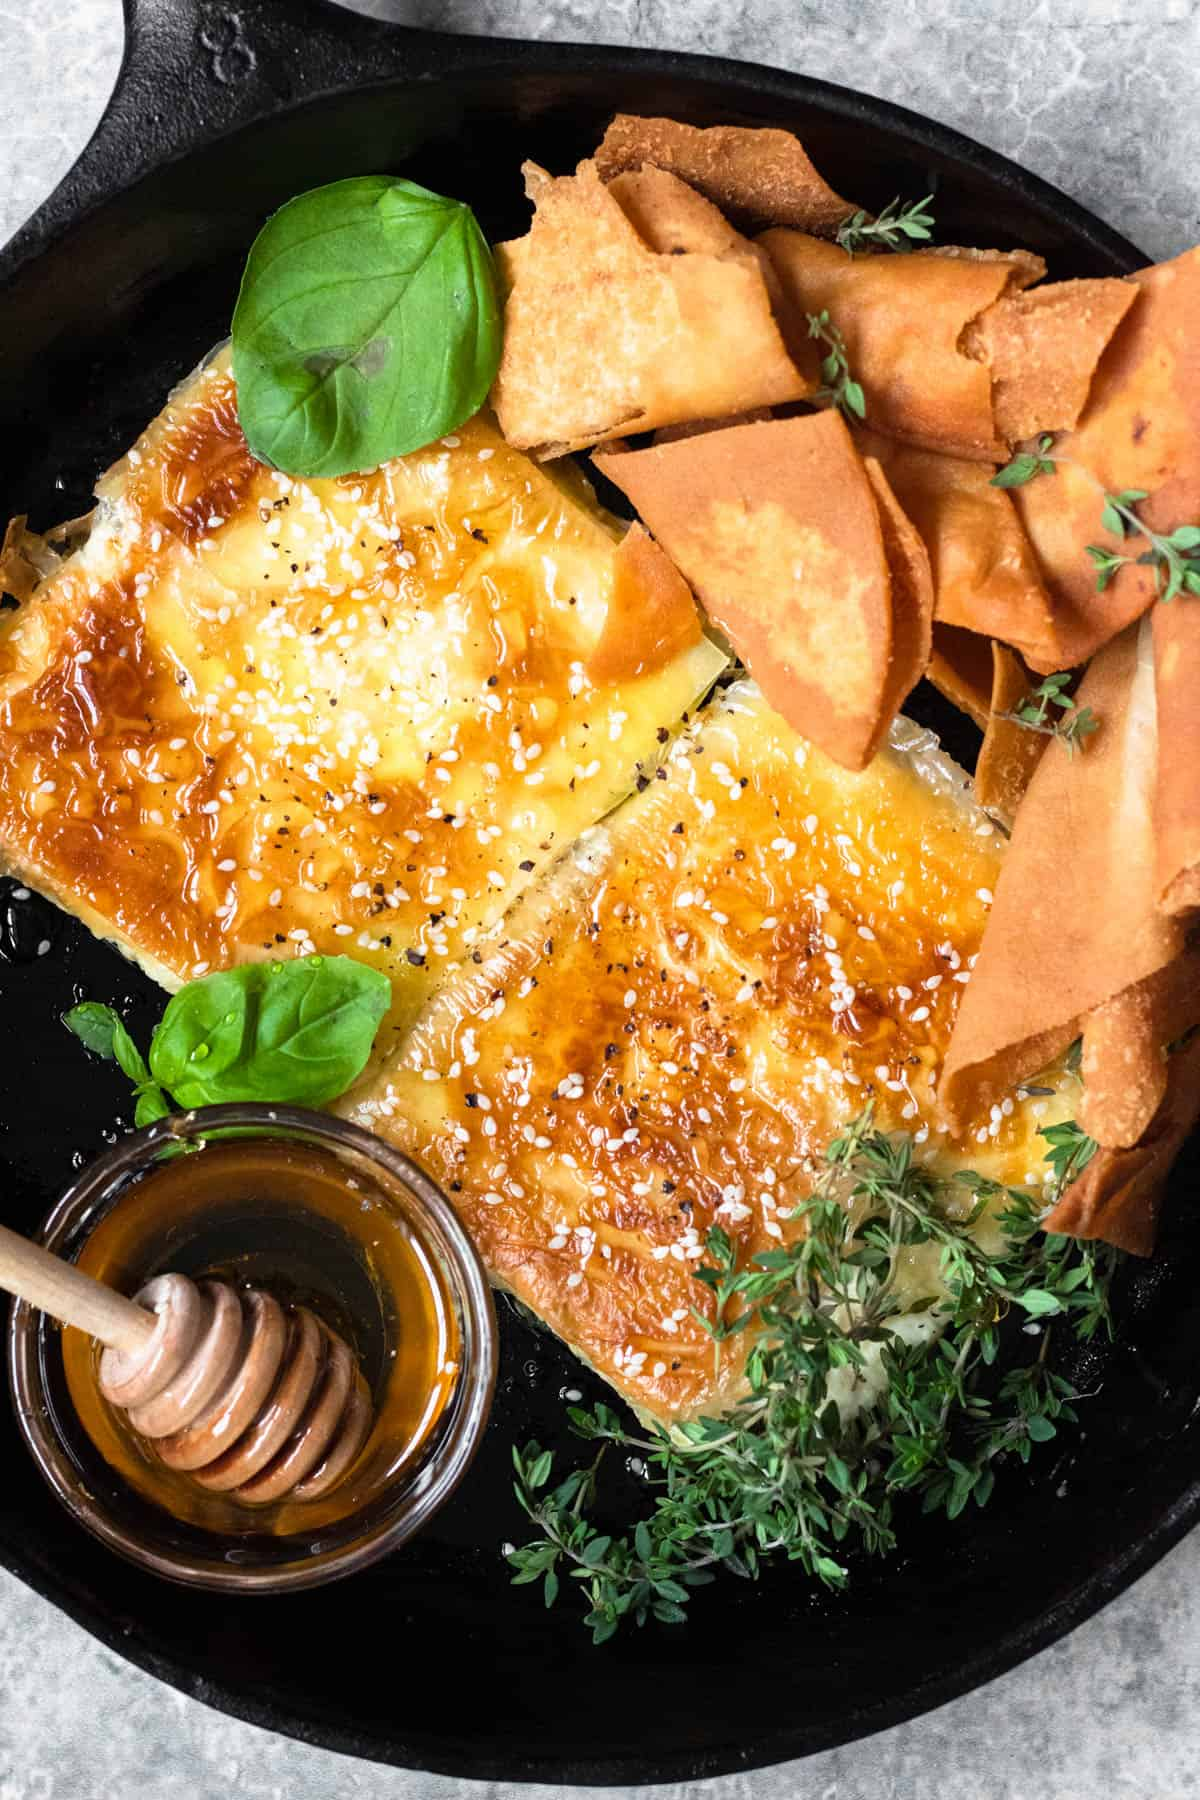 close up of feta cheese with pita chips and herbs